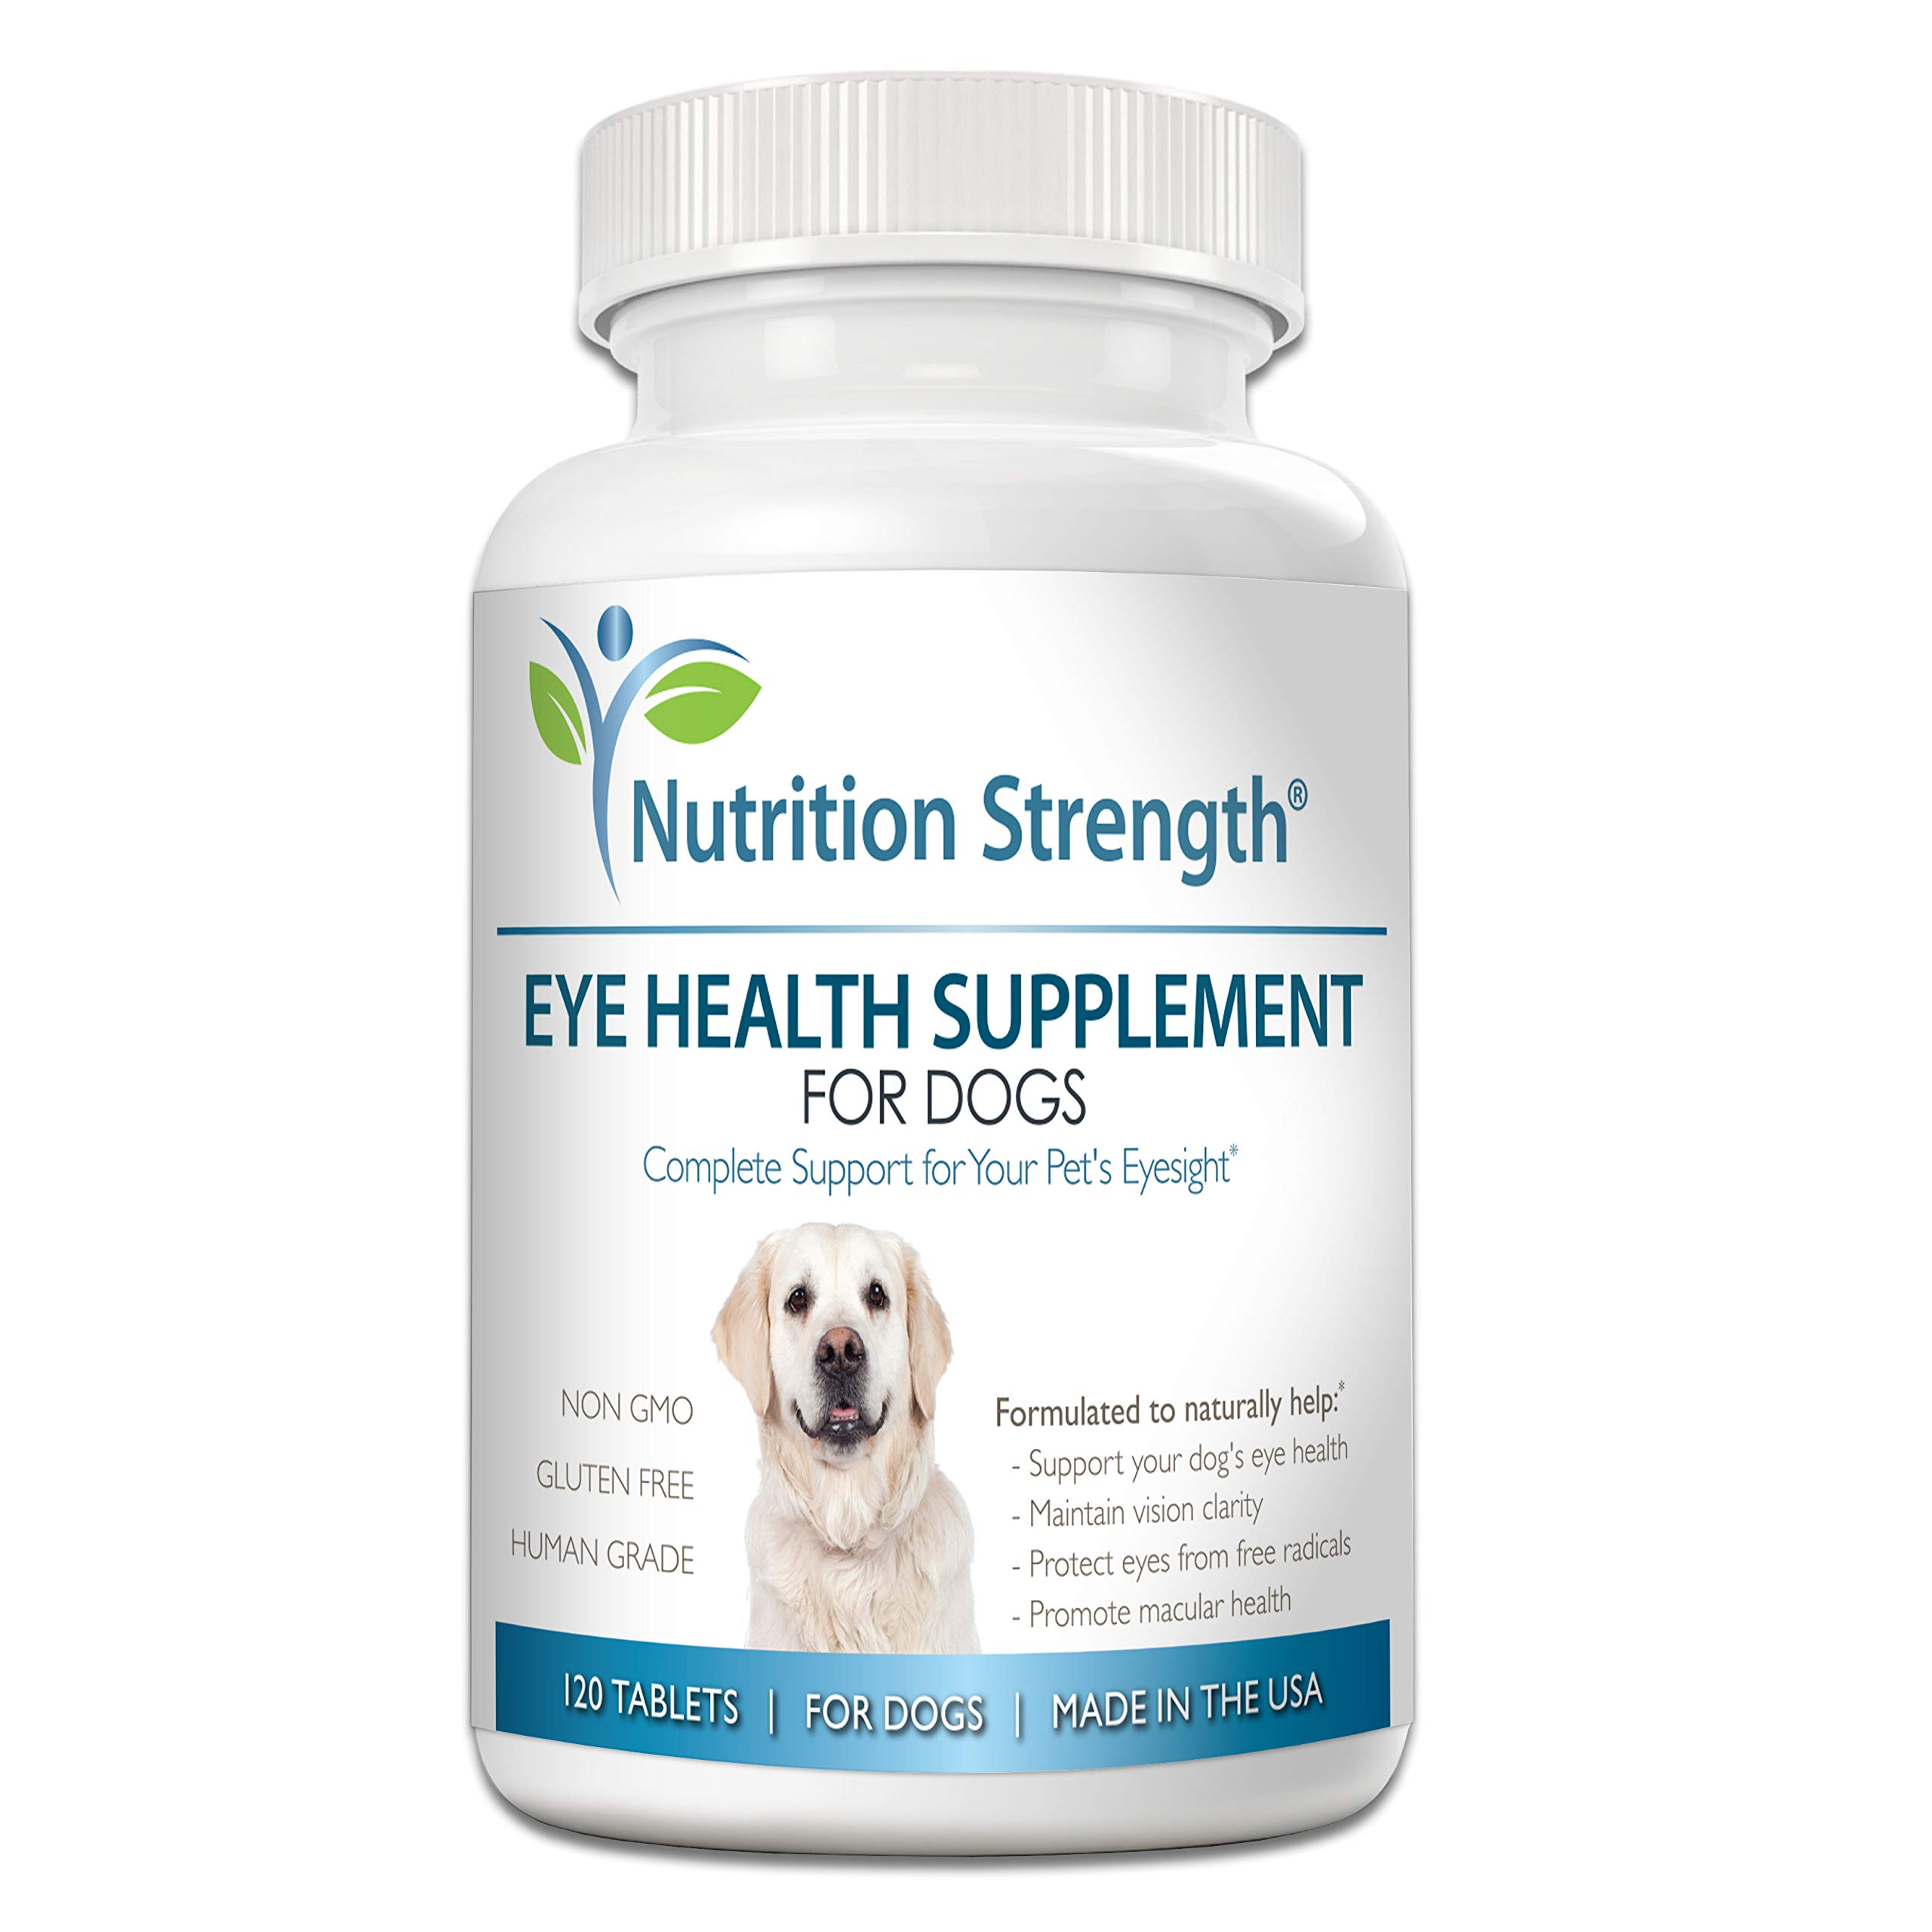 Nutrition Strength Eye Health Supplement for Dogs with Lutein, Bilberry Fruit, Grape Seed & Green Tea Extract, Multivitamin Support for Dog Eye Allergies & Irritation Problems, 120 Chewable Tablets by Nutrition Strength